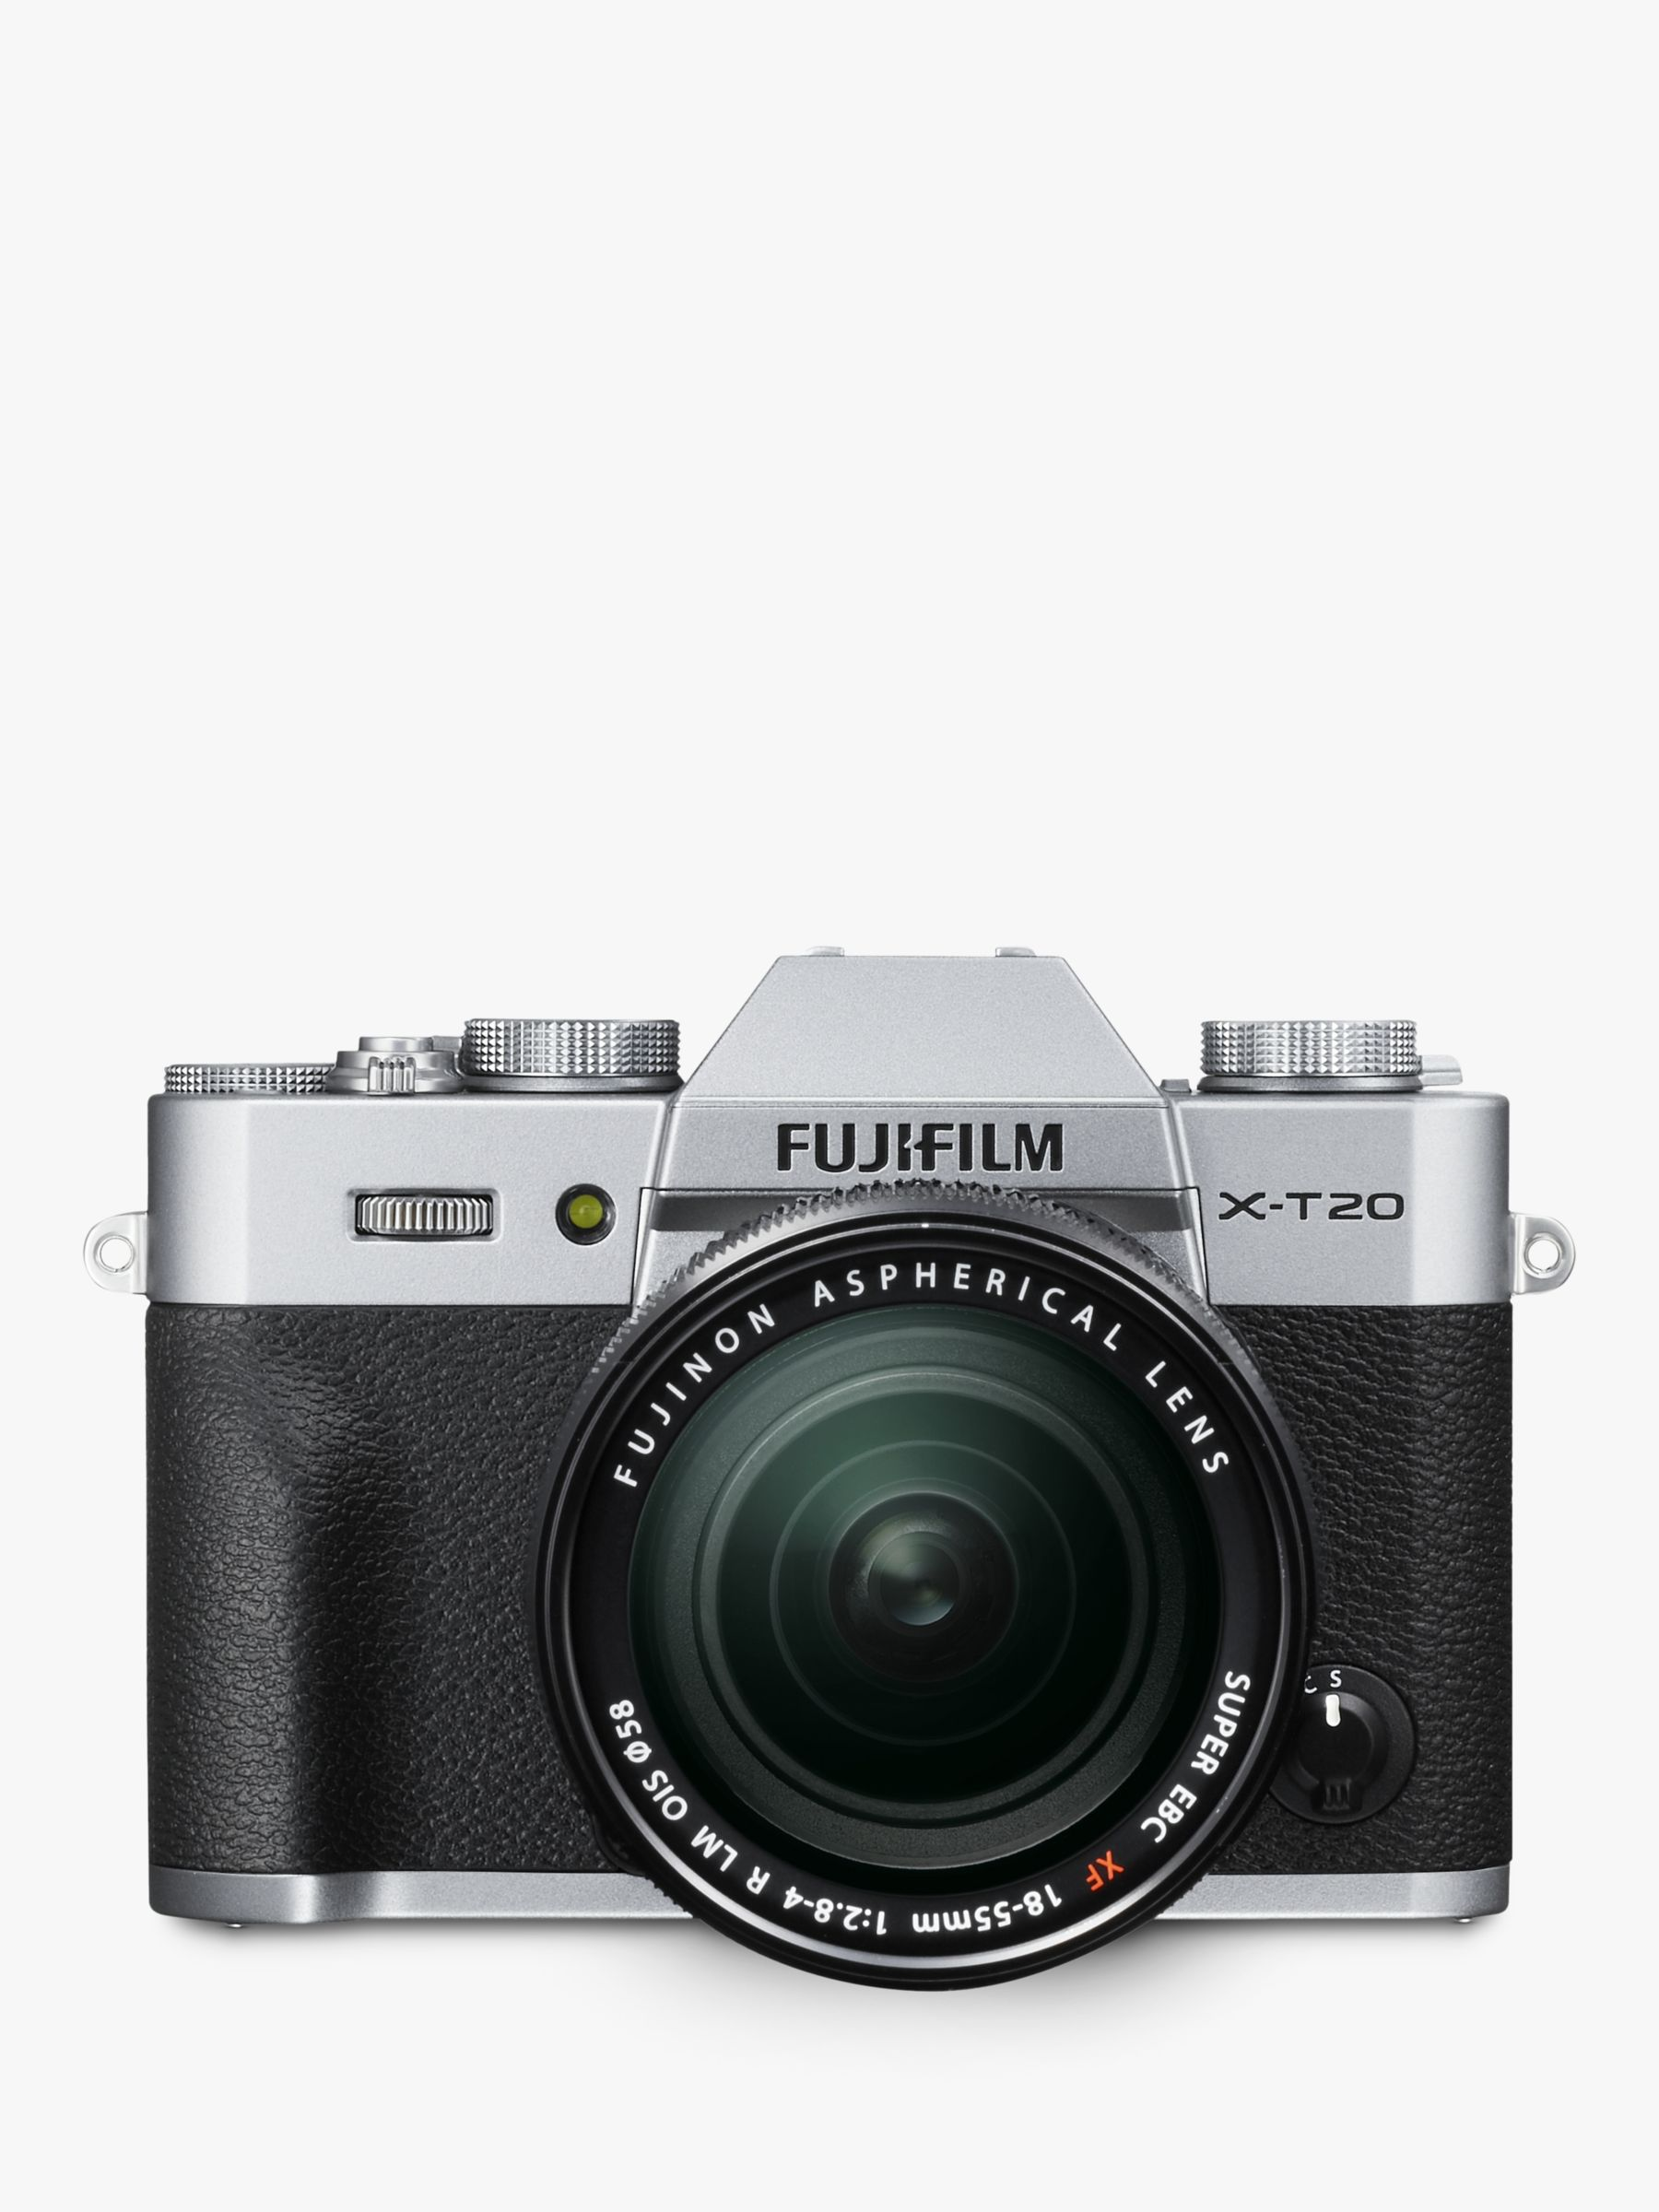 "Fujifilm Fujifilm X-T20 Compact System Camera with XF 18-55mm OIS Lens, 4K Ultra HD, 24.3MP, Wi-Fi, OLED EVF, 3"" Tiltable LCD Touch Screen"